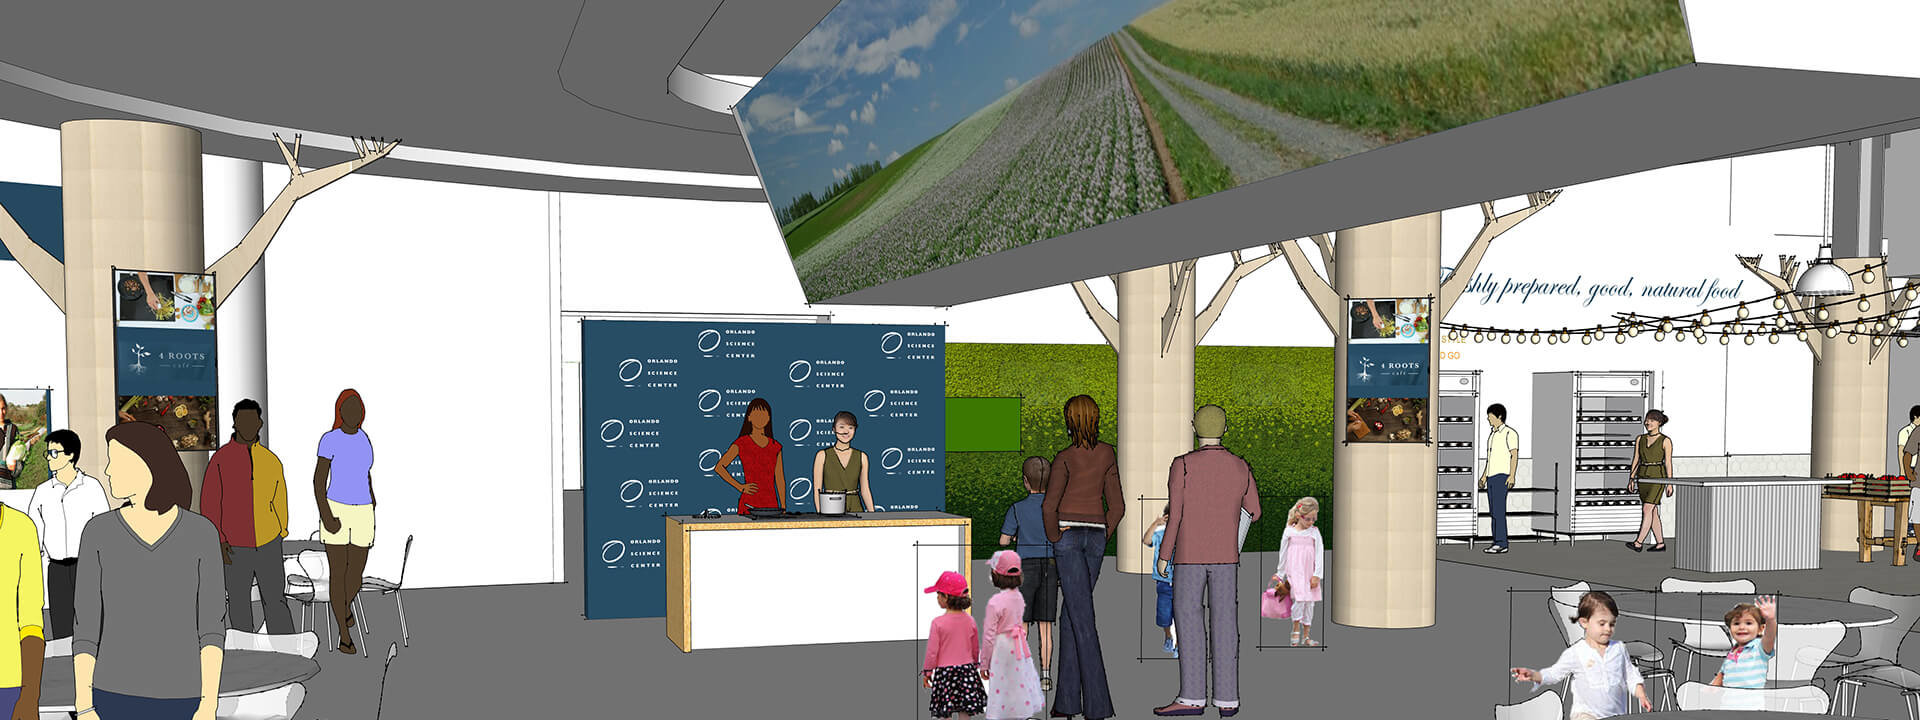 Concept rendering of 4Roots Cafe showing interactive presentation area in middle of cafe.